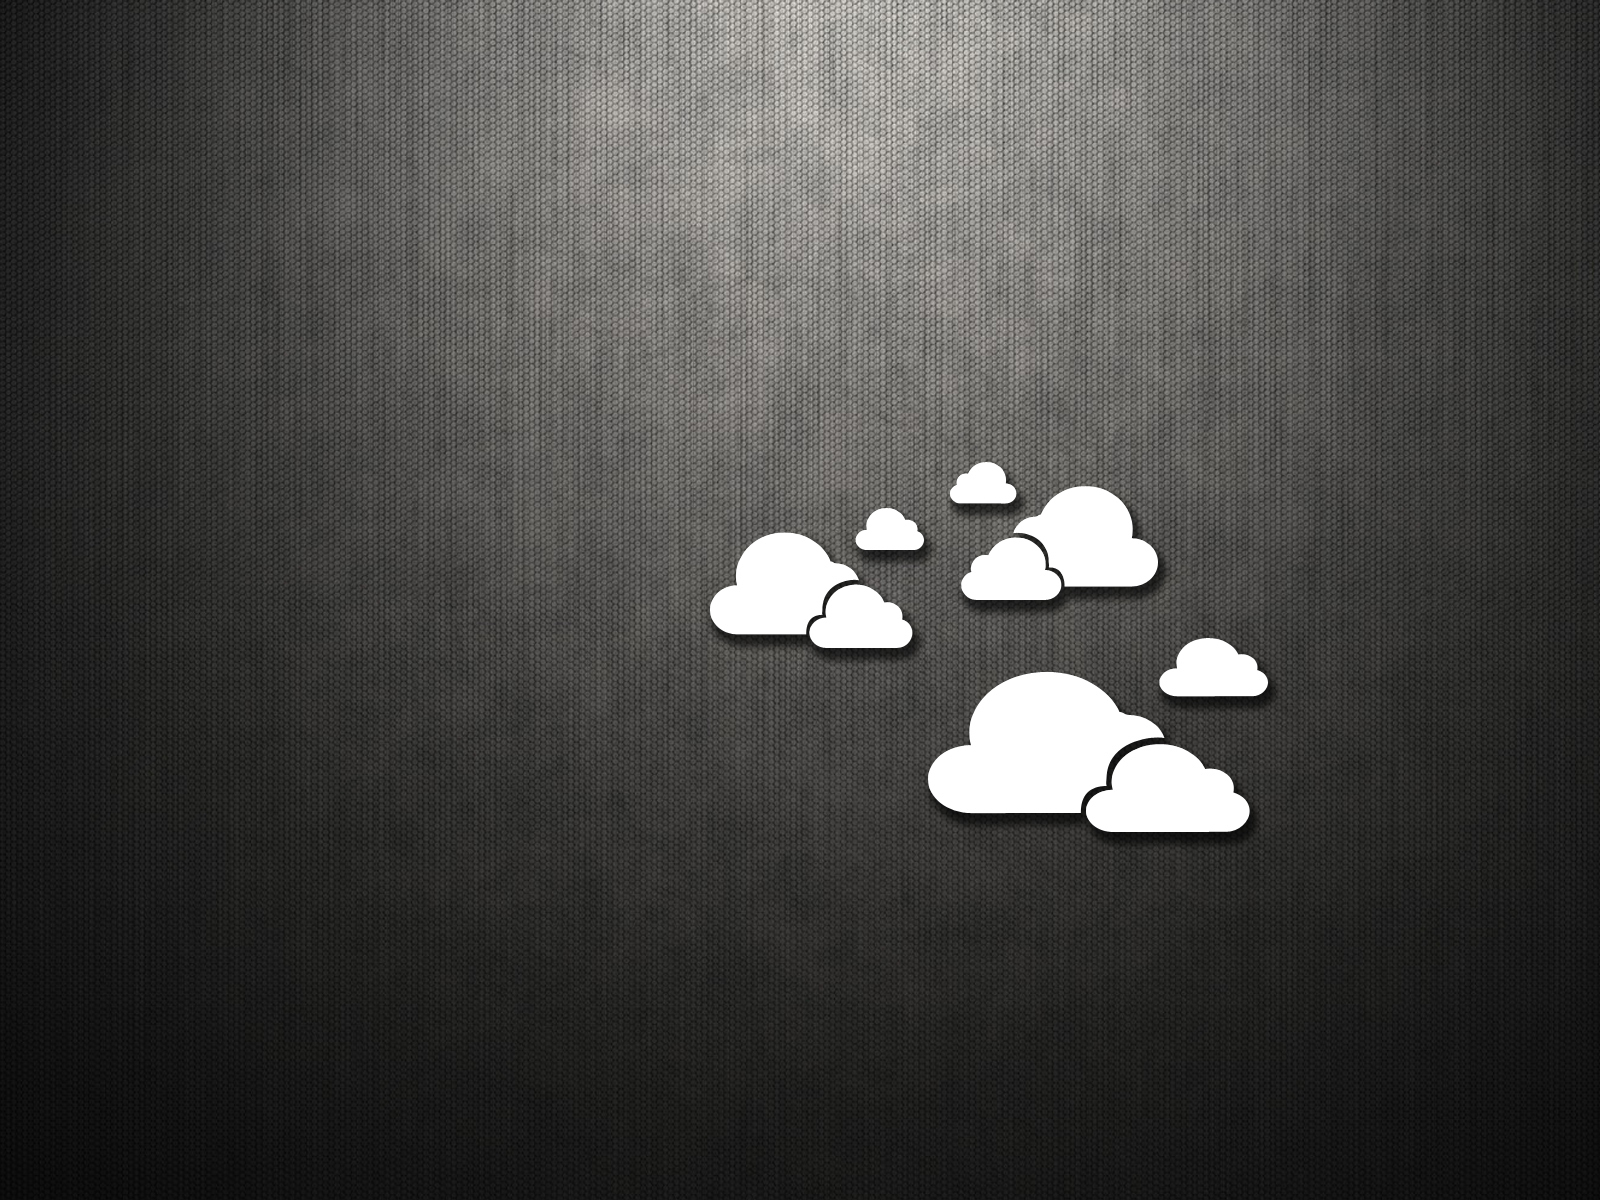 Minimal Clouds Simple Hd Desktop Wallpaper Minimalist Black And White Cloud 2937014 Hd Wallpaper Backgrounds Download